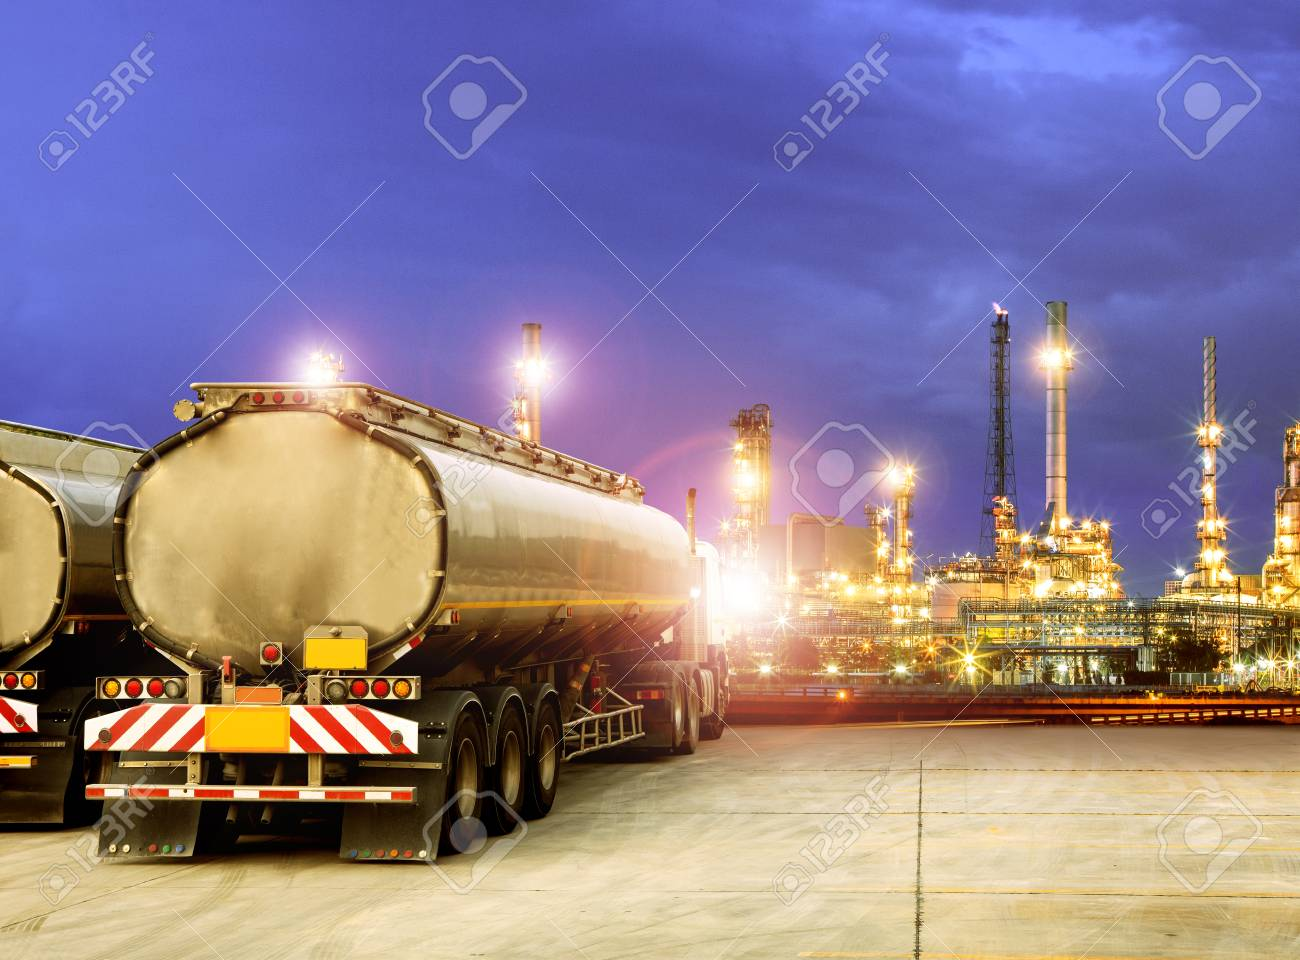 oil container truck and beautiful lighting of oil refinery plant - 99270278